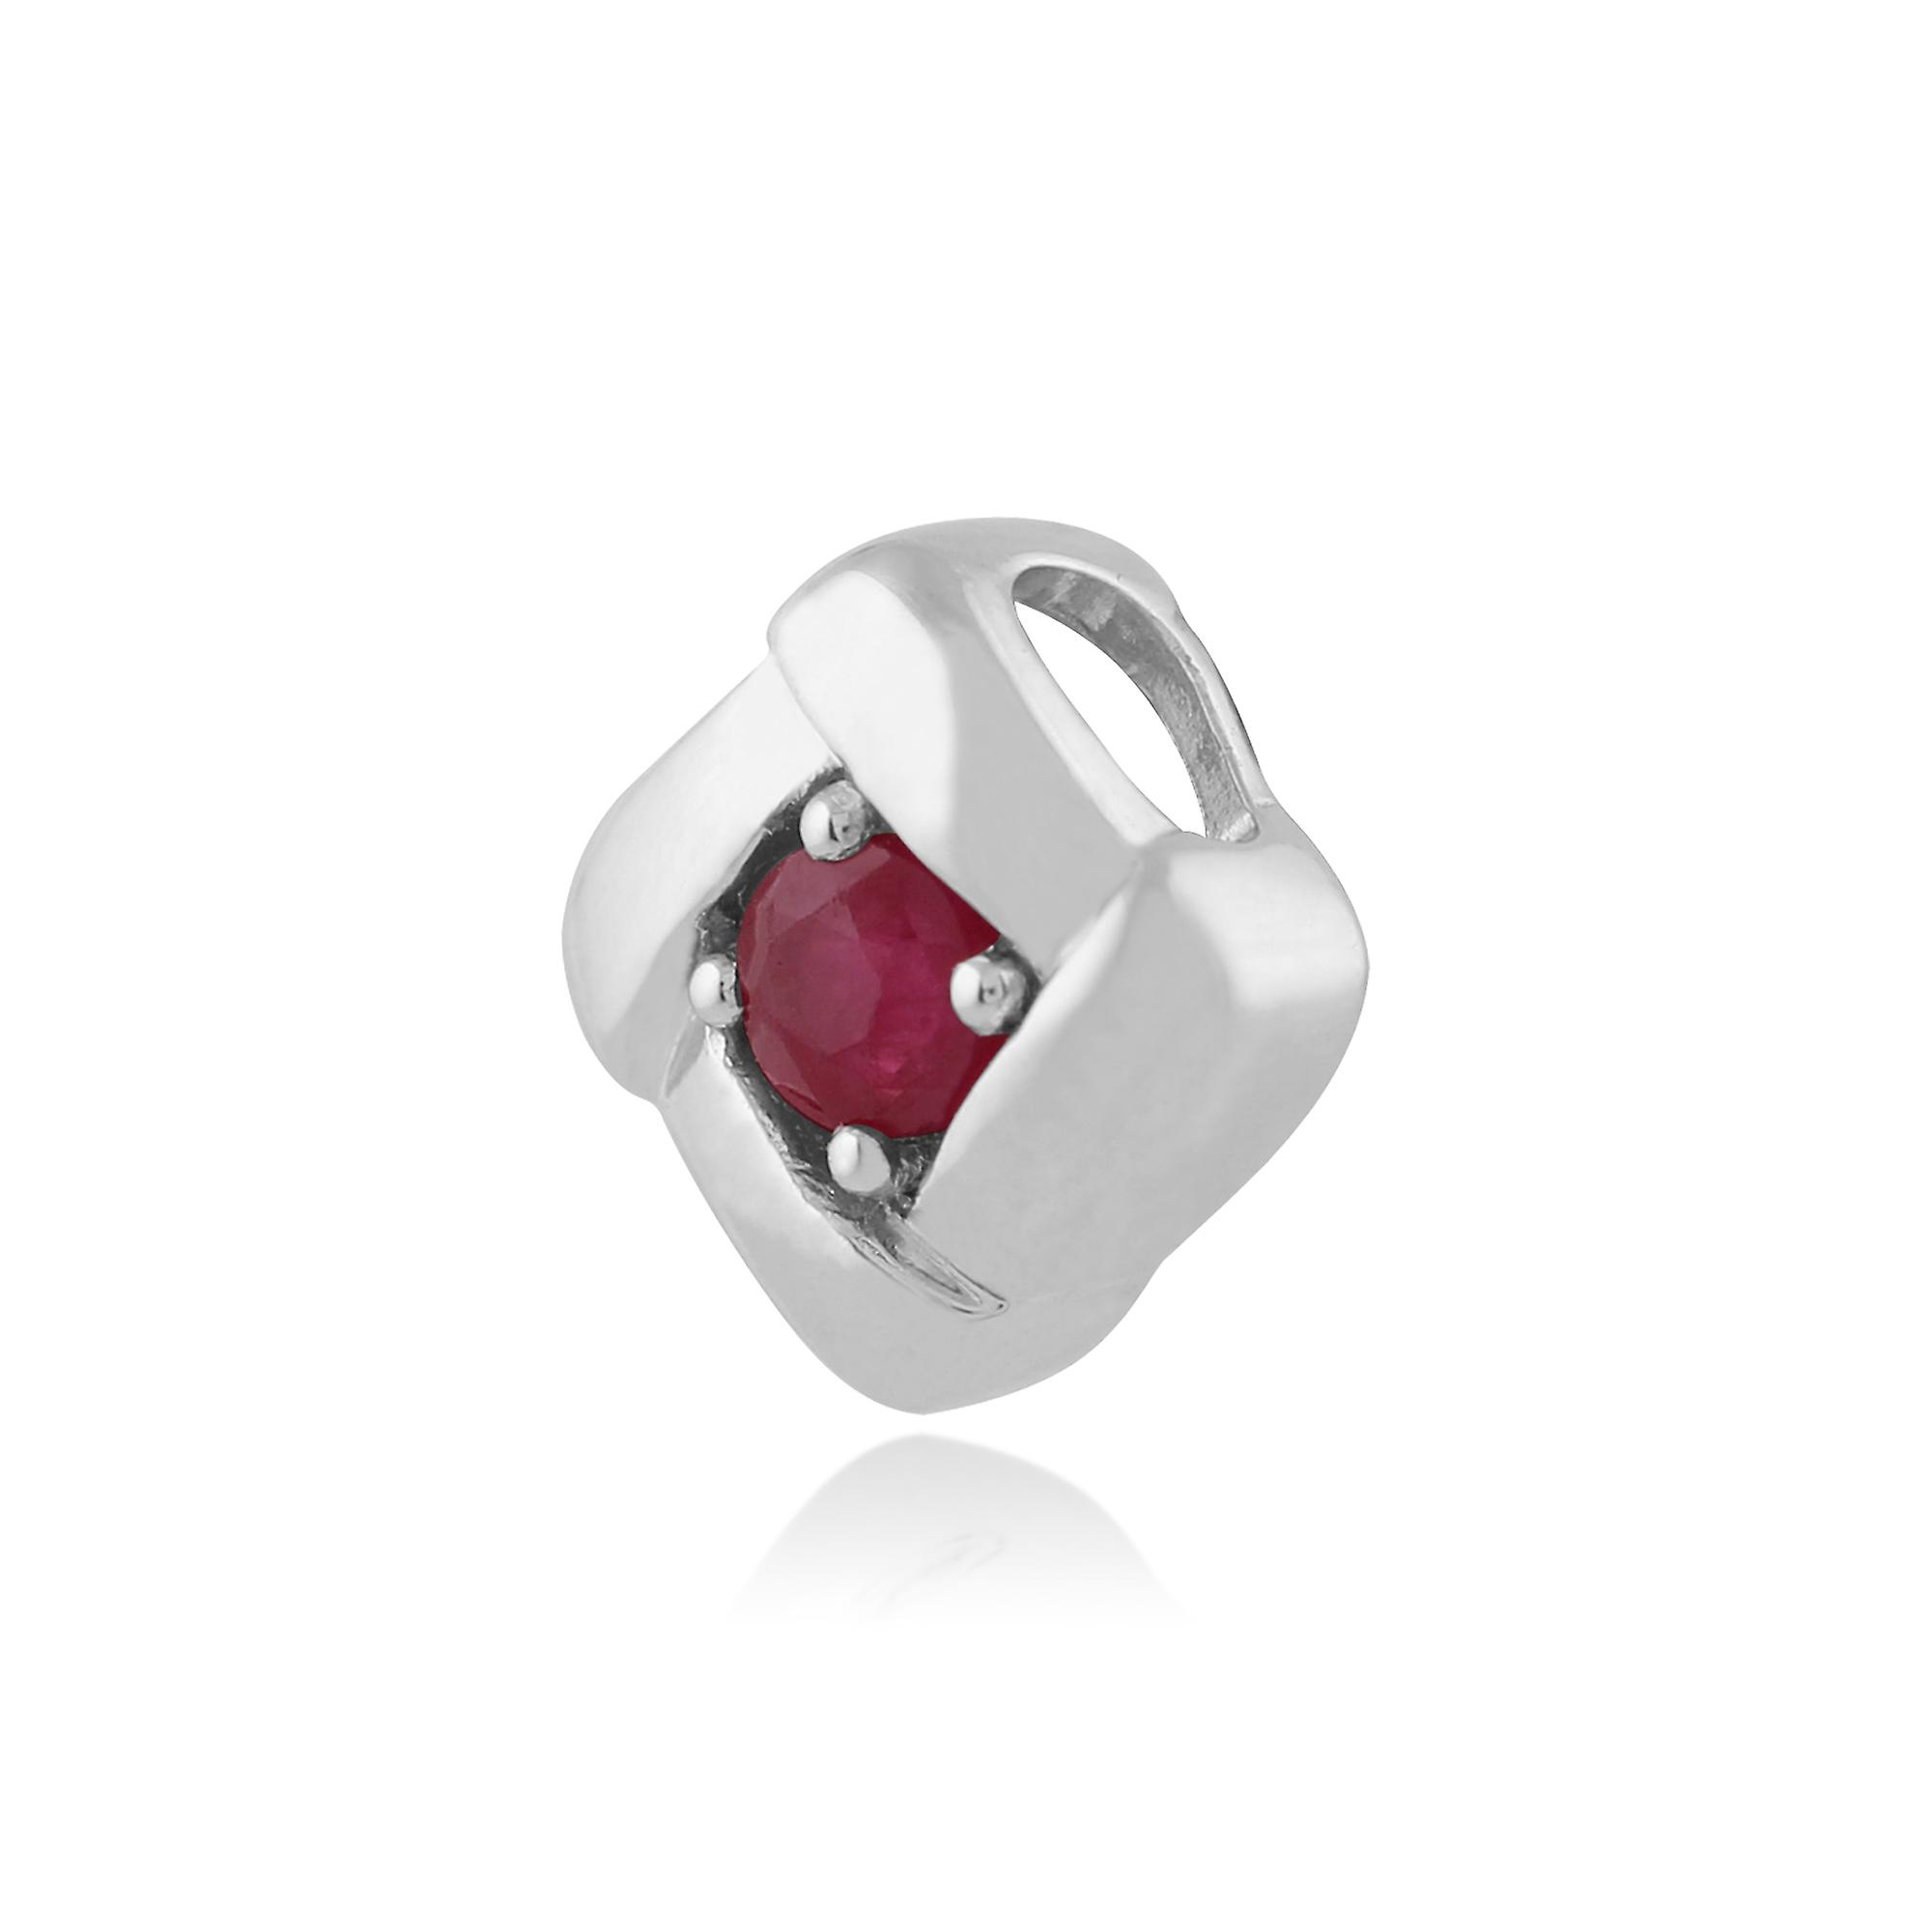 Gemondo 925 Sterling Silver 0.14ct Ruby Square Crossover Pendant on 45cm Chain